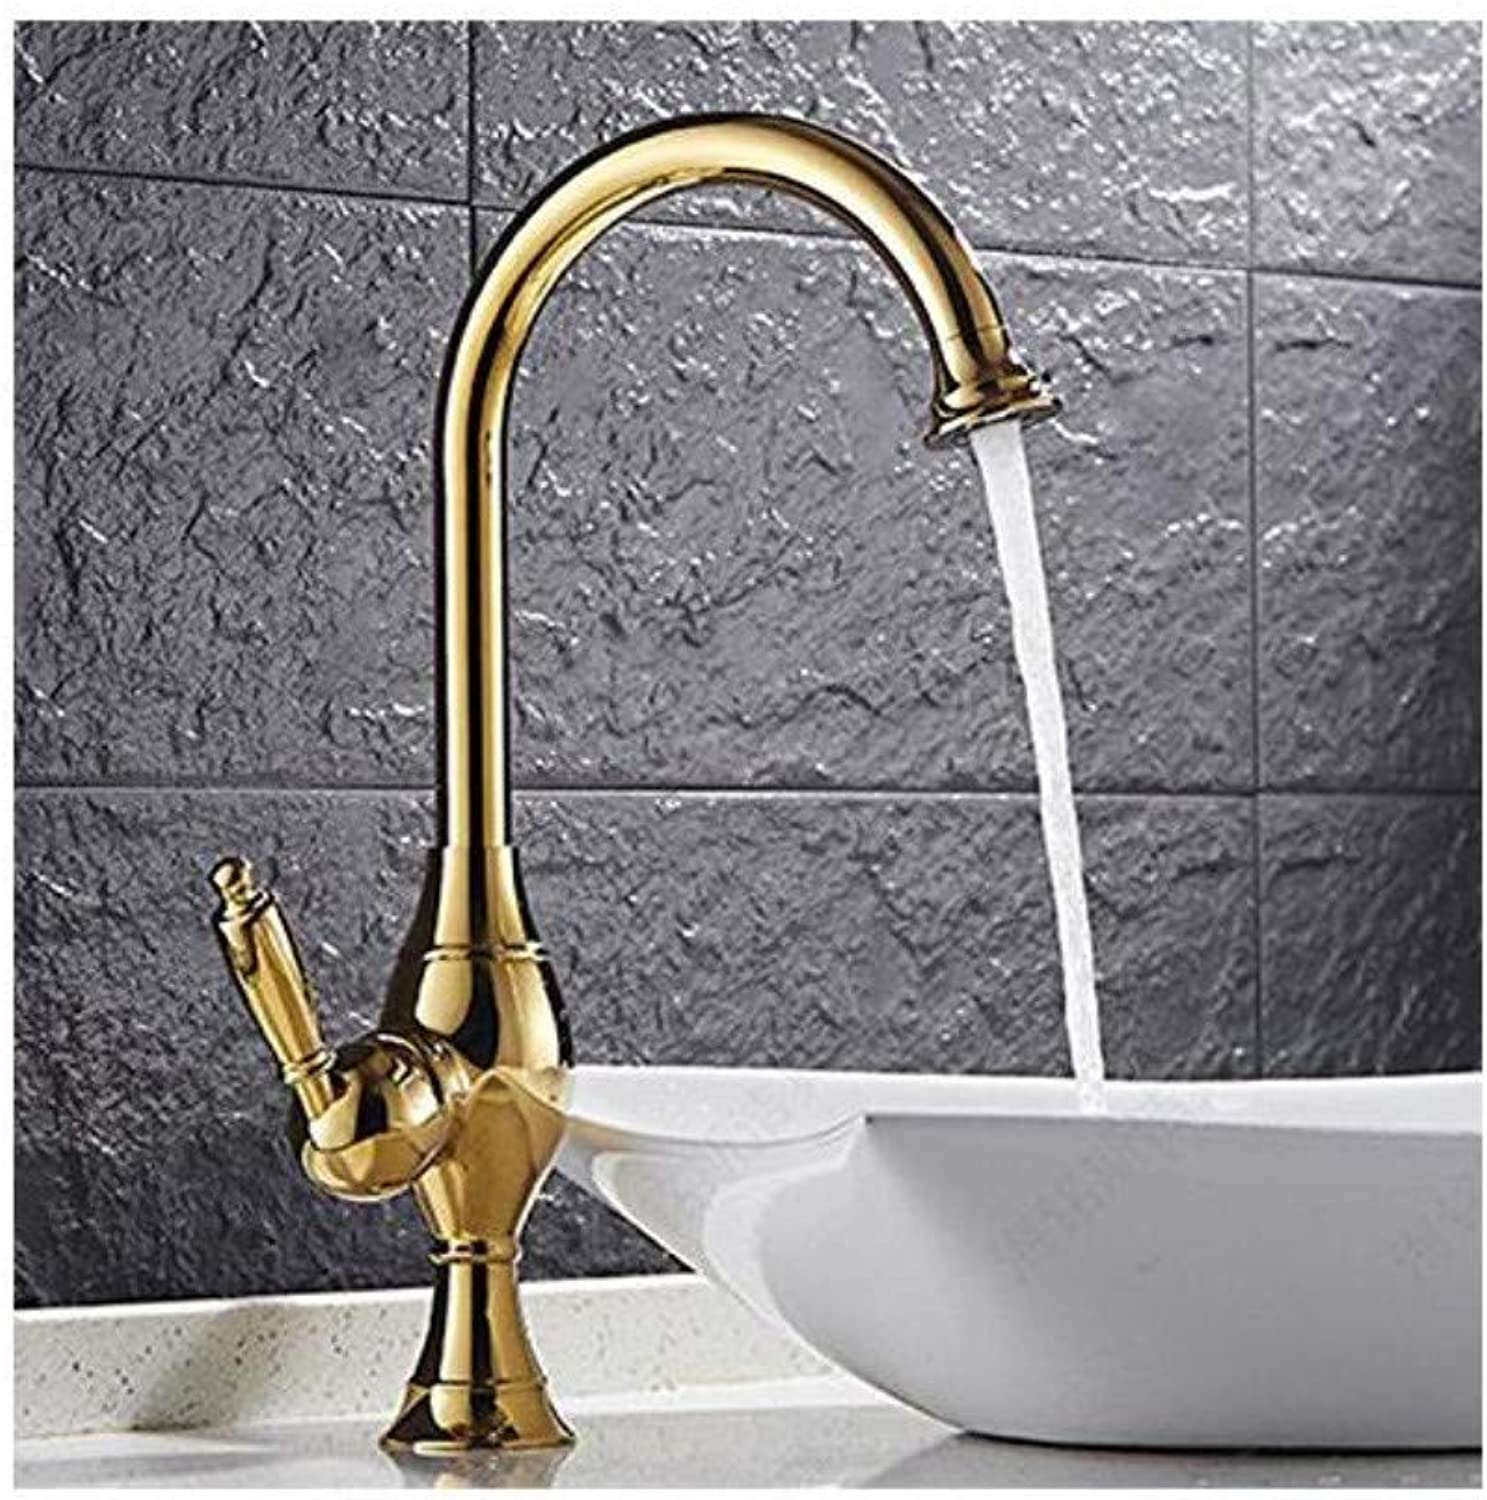 Vintage Plated Mixer Faucet Single Handle Brass Kitchen Sink Mixer Tap of Hot Cold Kitchen Water Tap